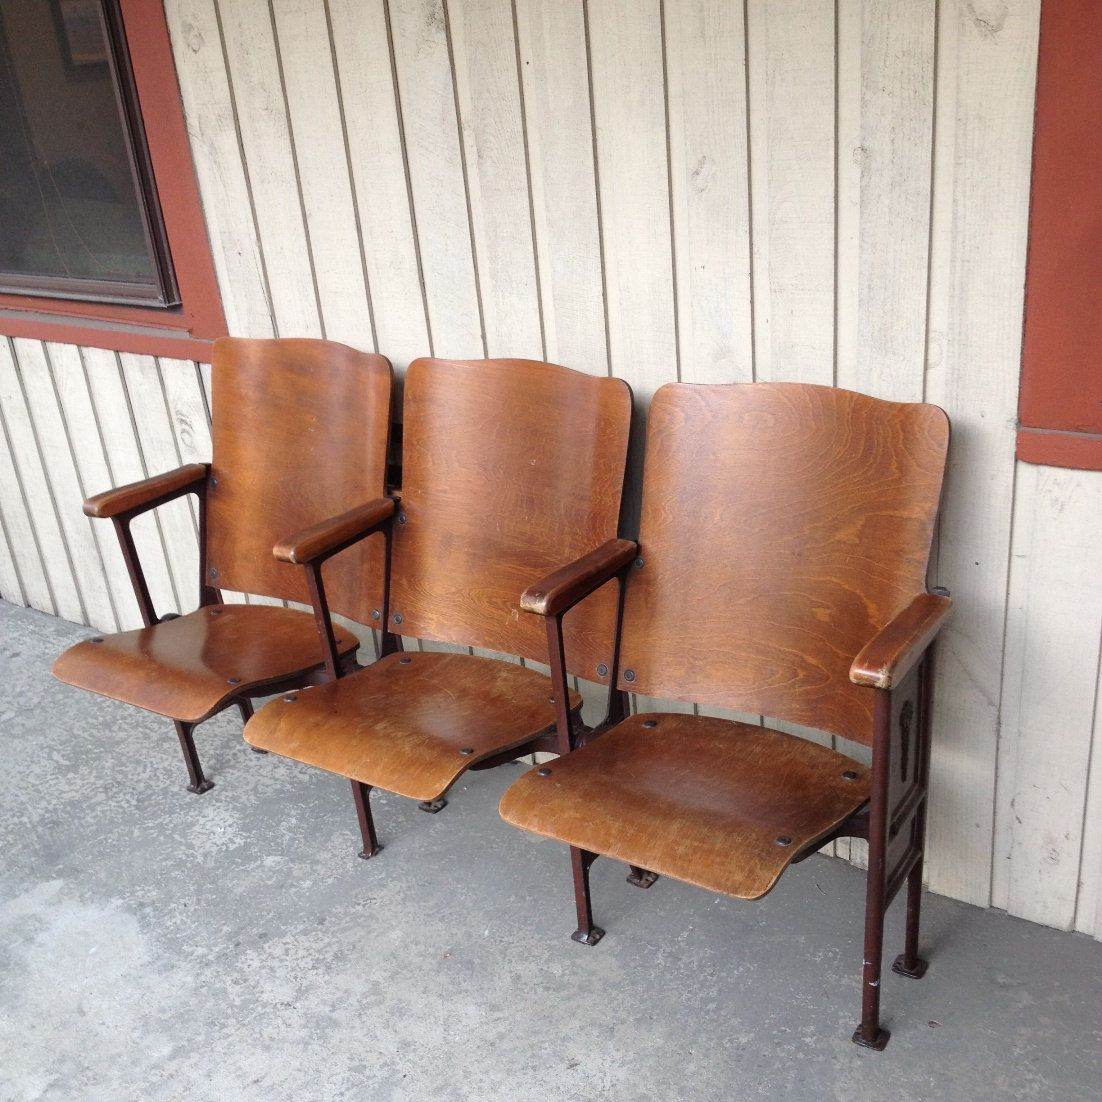 Antique Theater Chairs - Best 2000+ Antique decor ideas